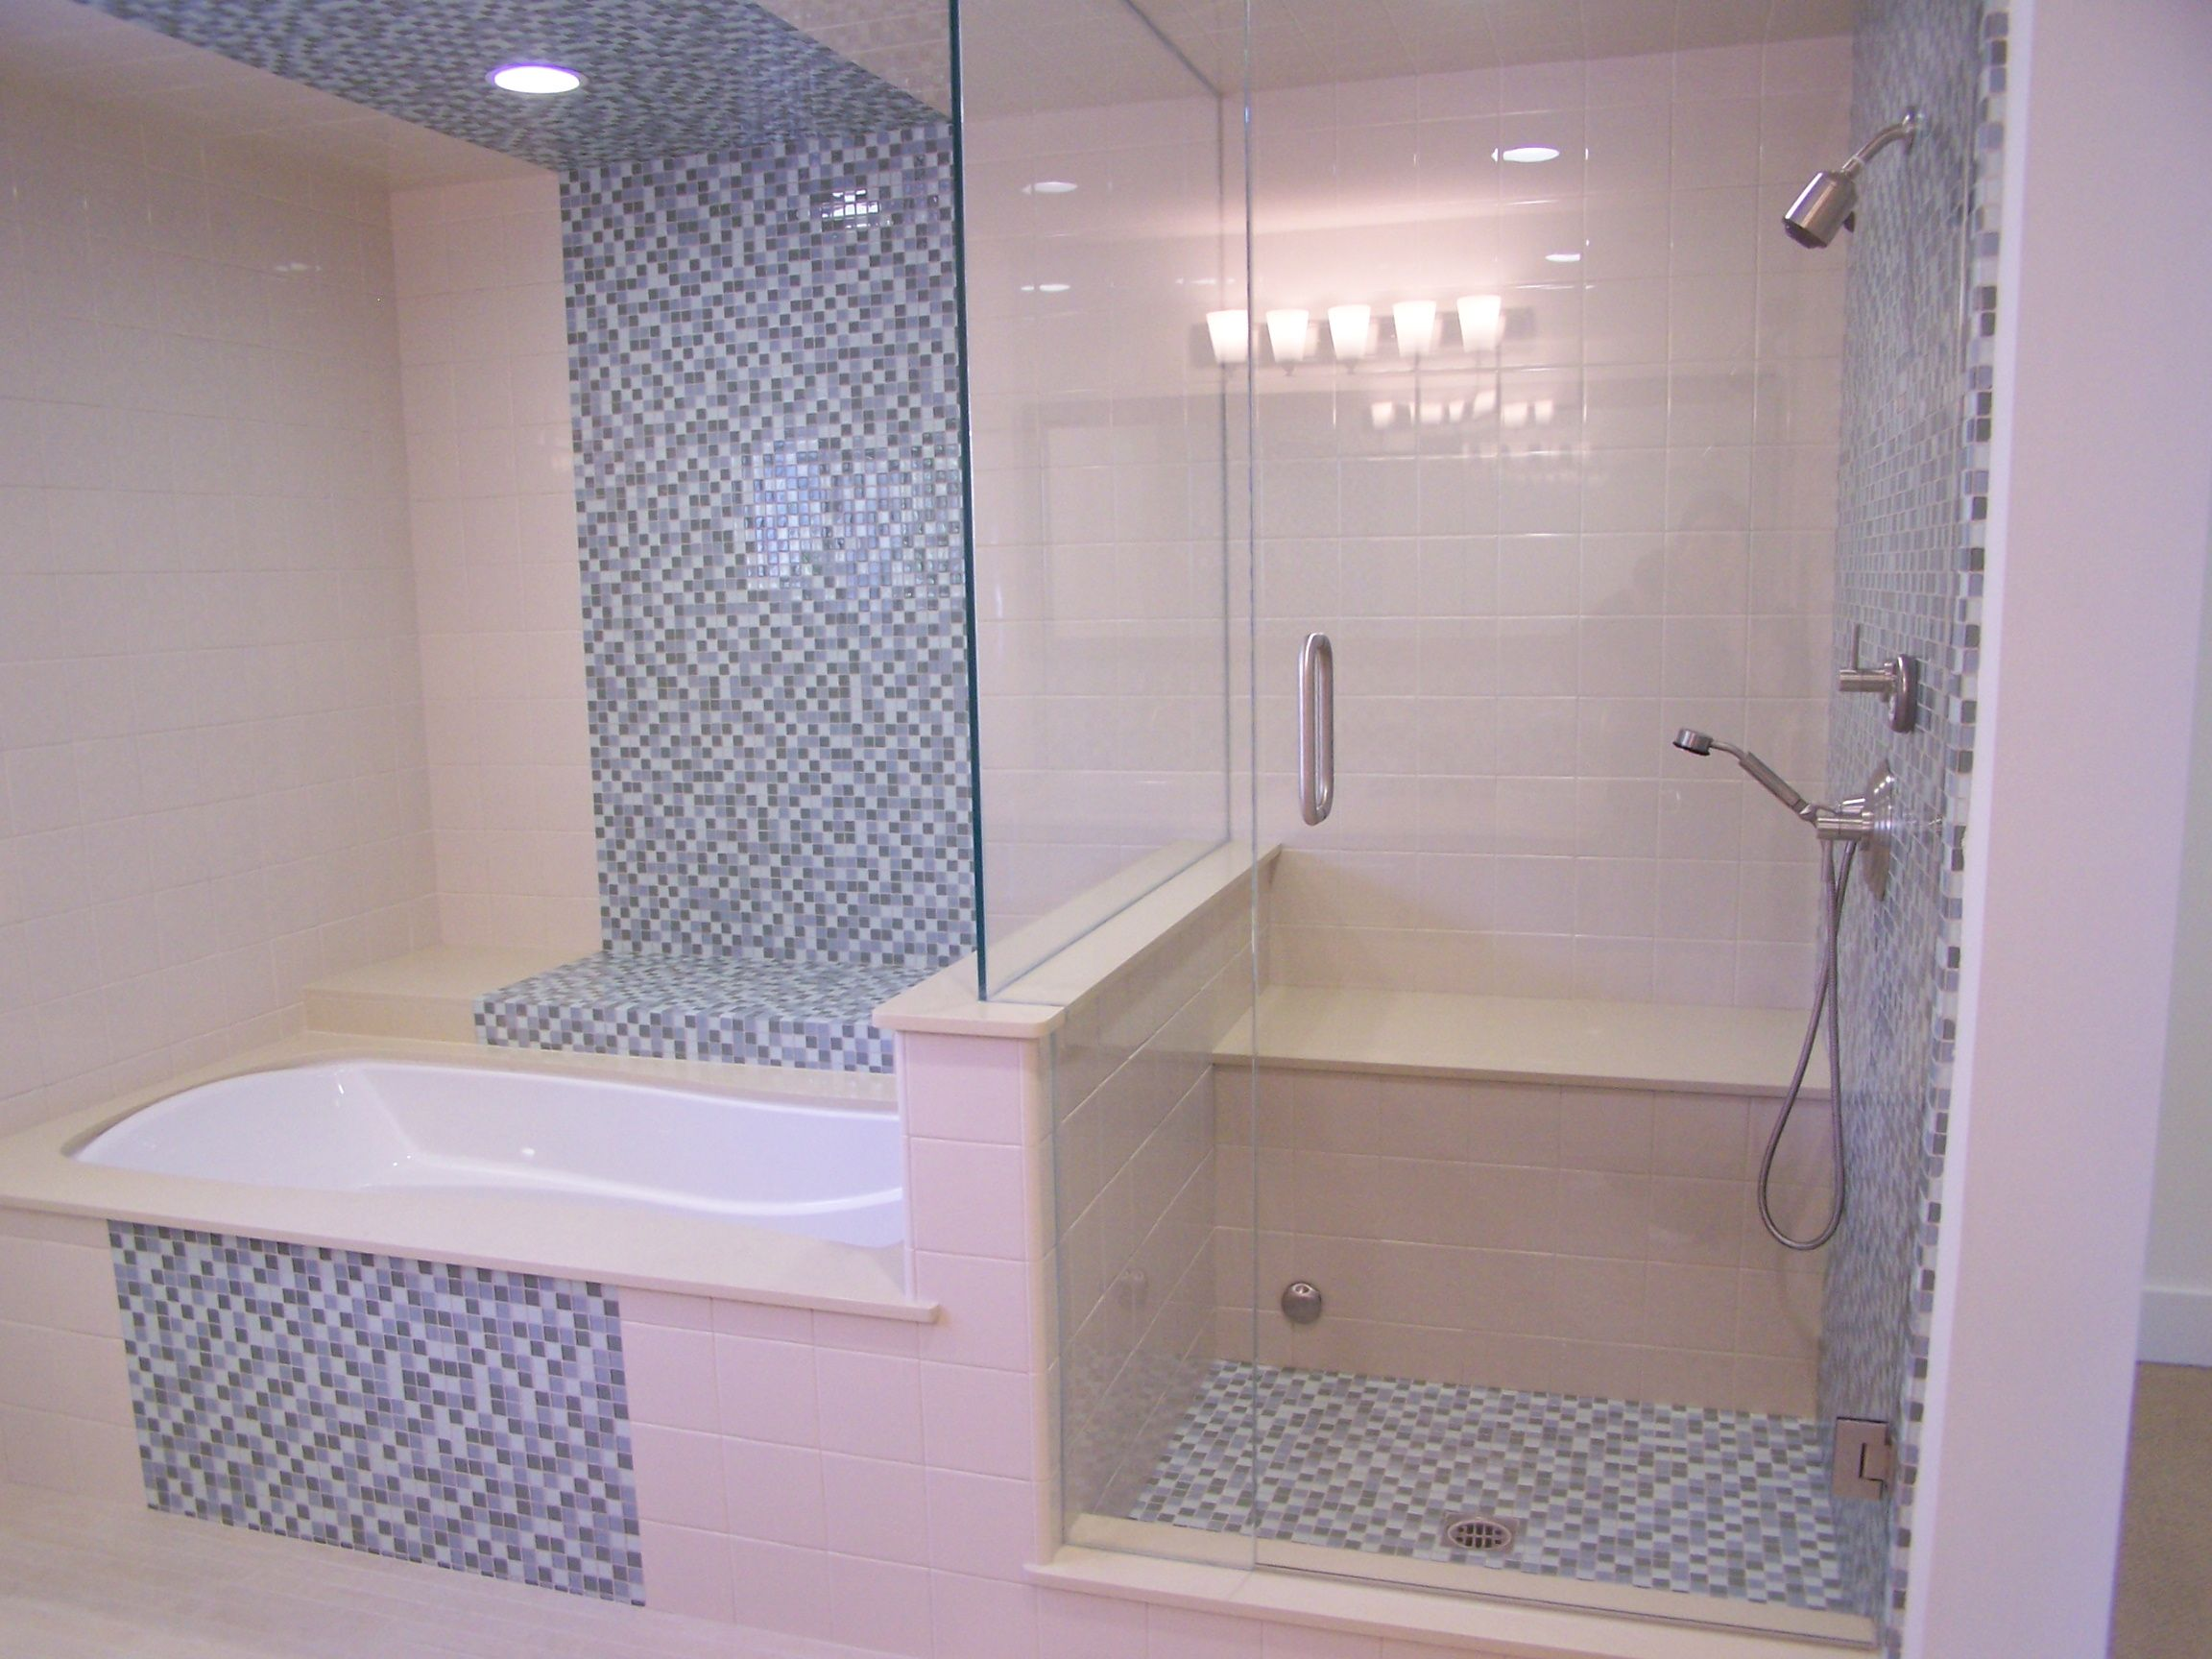 How To Tile A Bathroom Walls As Well As Shower Tub Area Tile